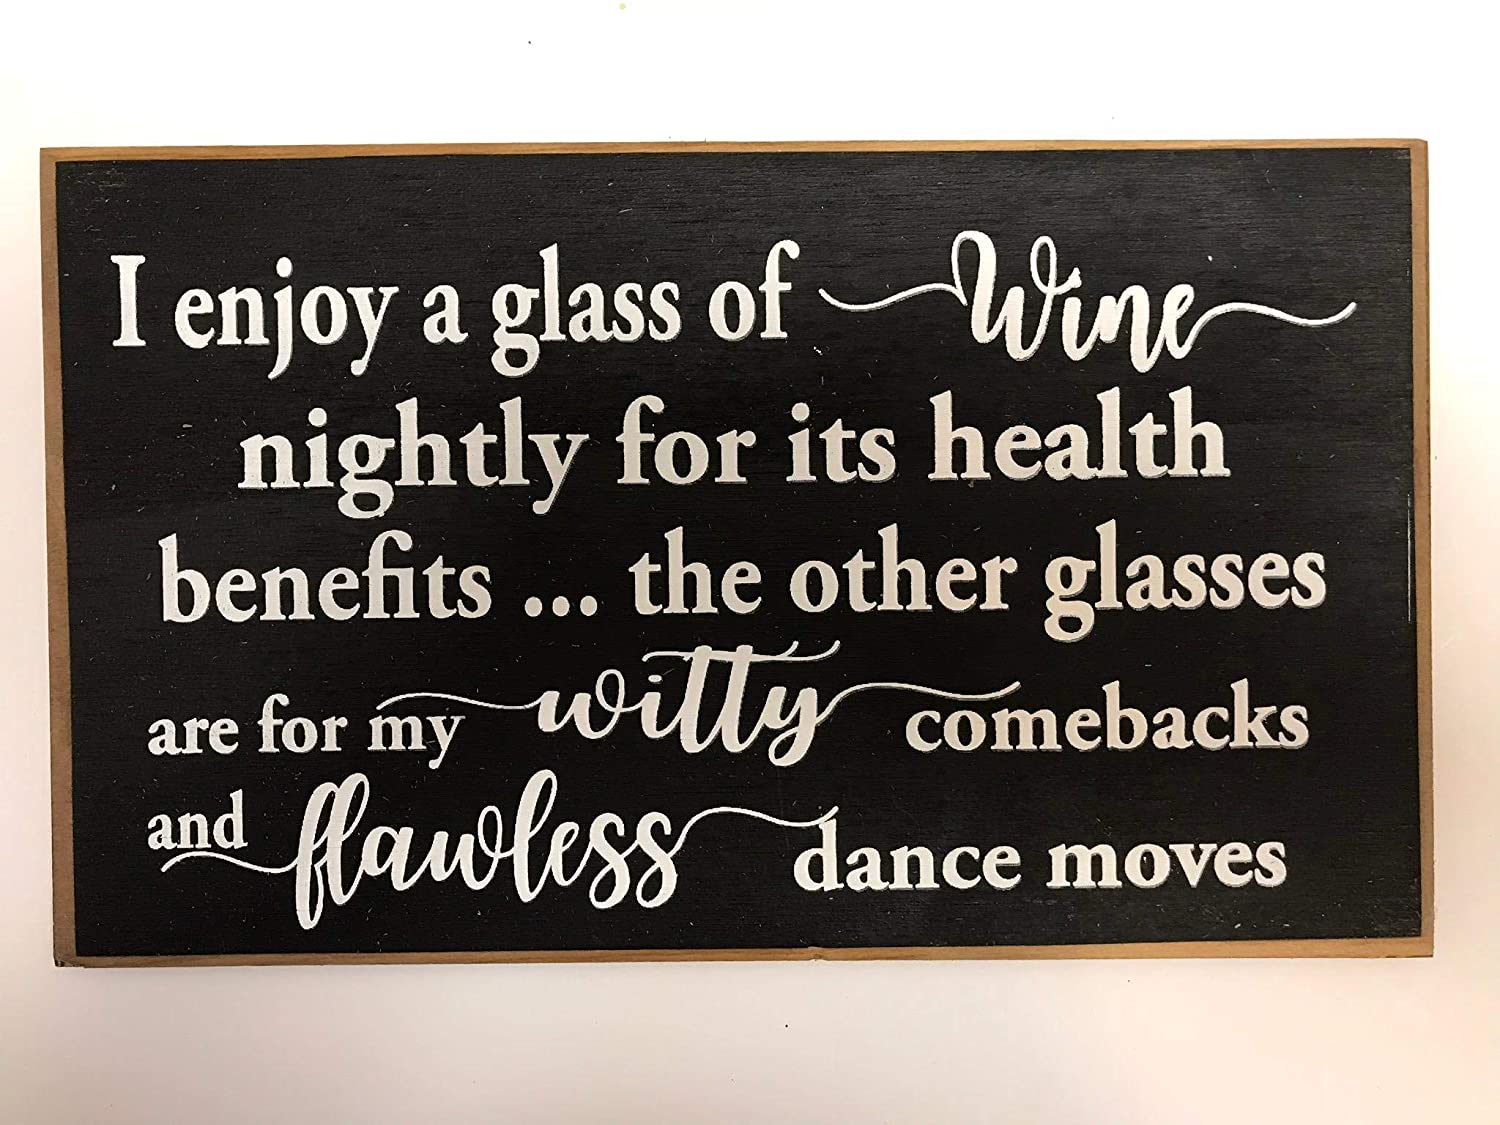 Wine witty comeback flawless dance moves sign